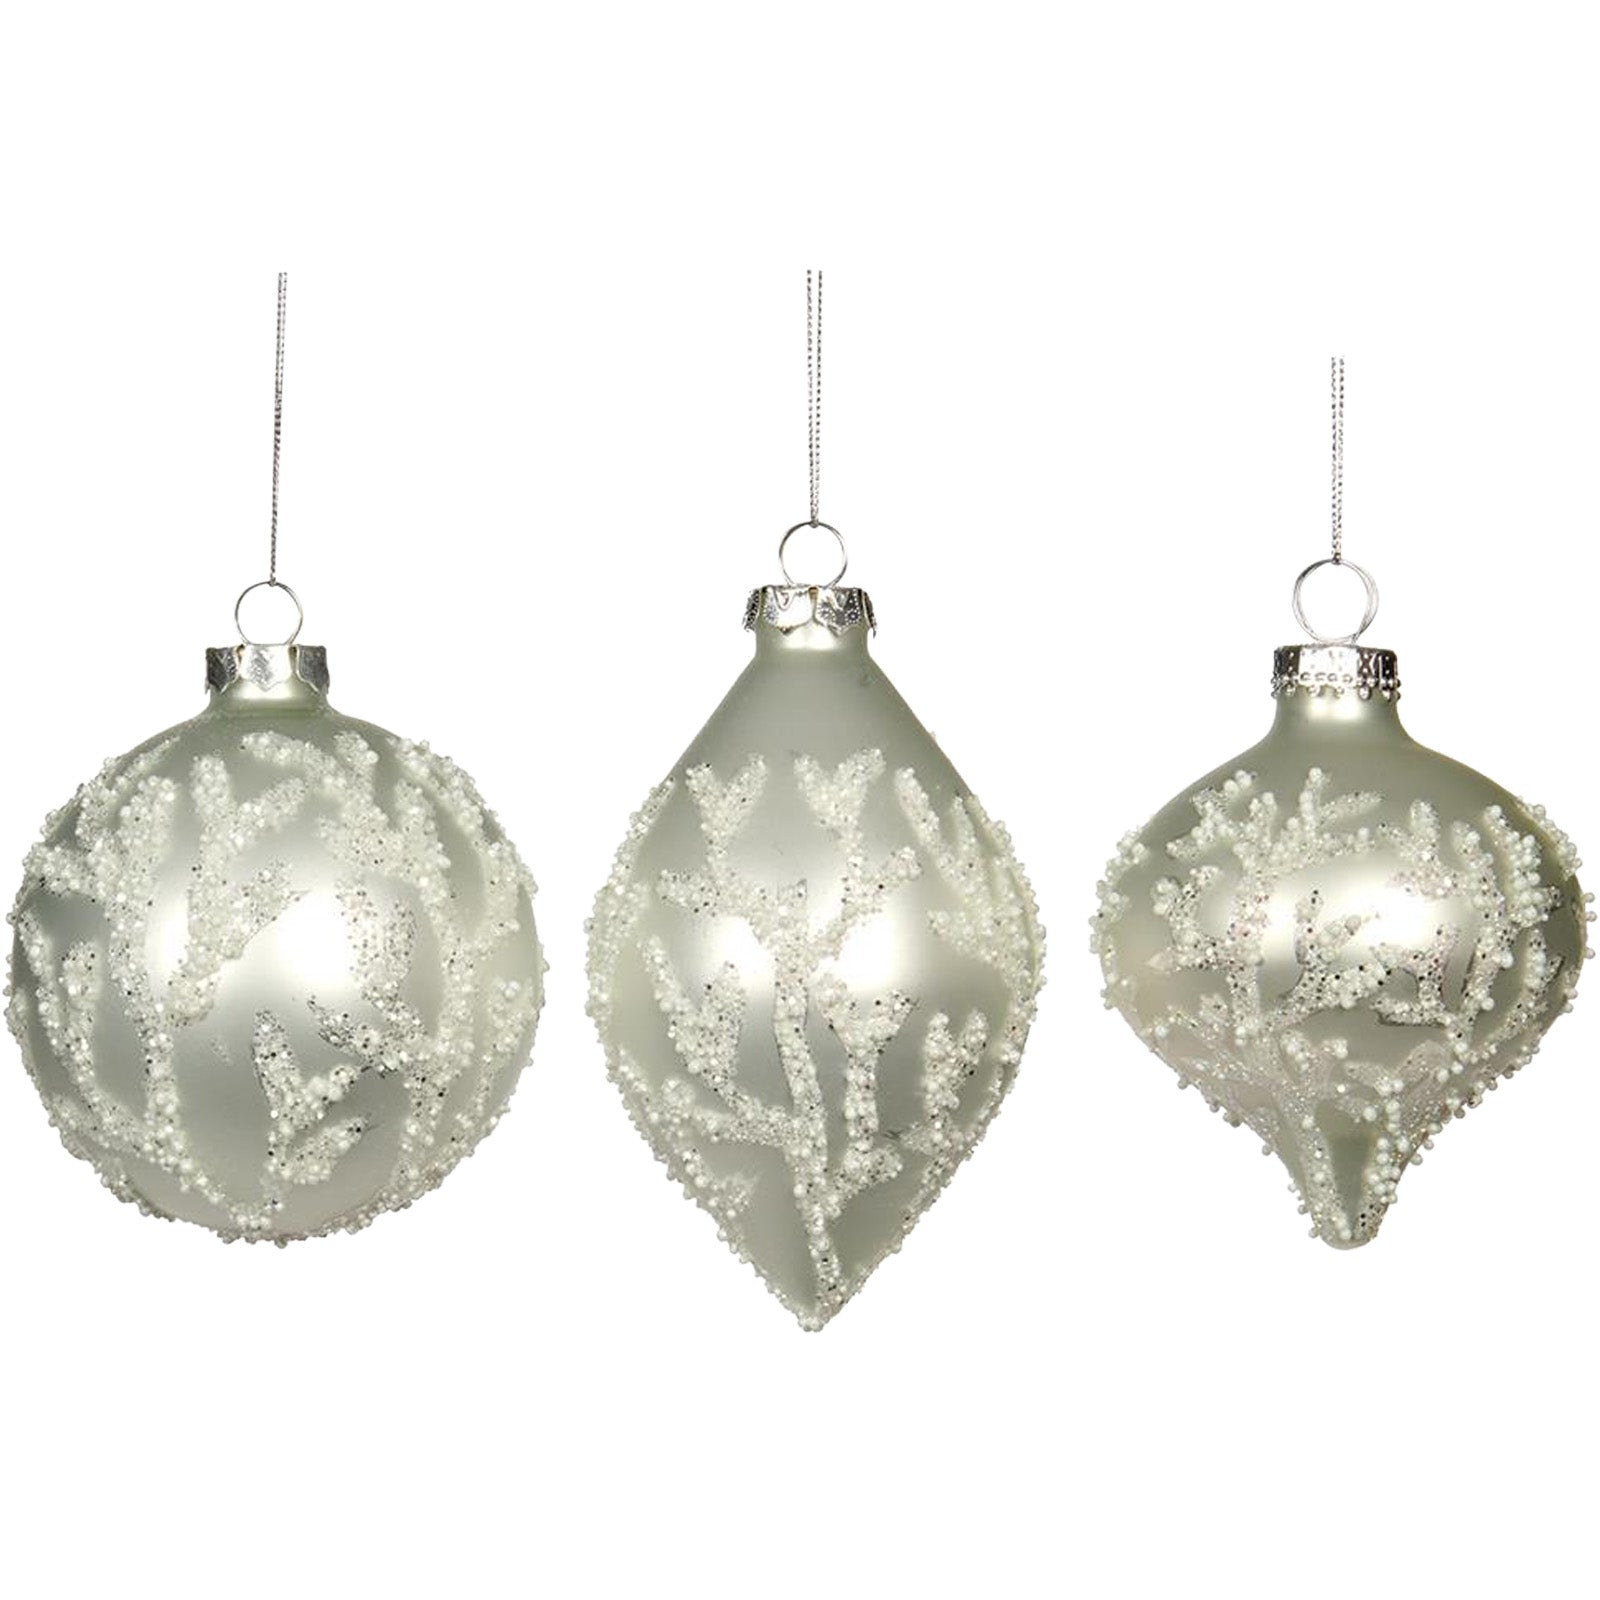 Set of Three Beaded Coral Baubles by LuxDeco - Christmas tree decoration - LuxDeco.com